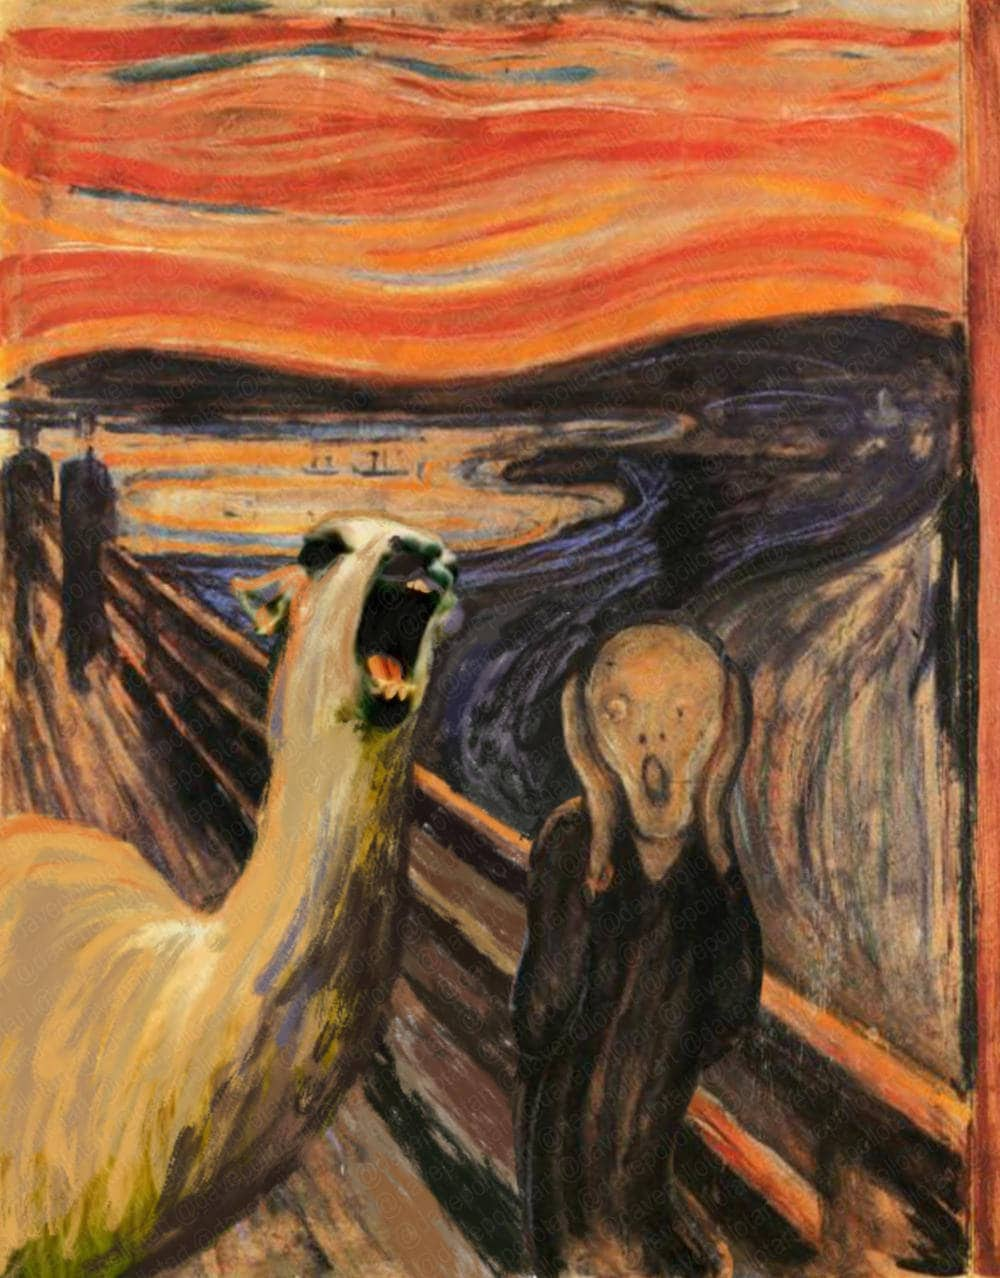 the scream artwork Simon kregar artwork the scream for sale and offering more original artworks in  painting acrylic medium and world conflict theme contemporary artist website.